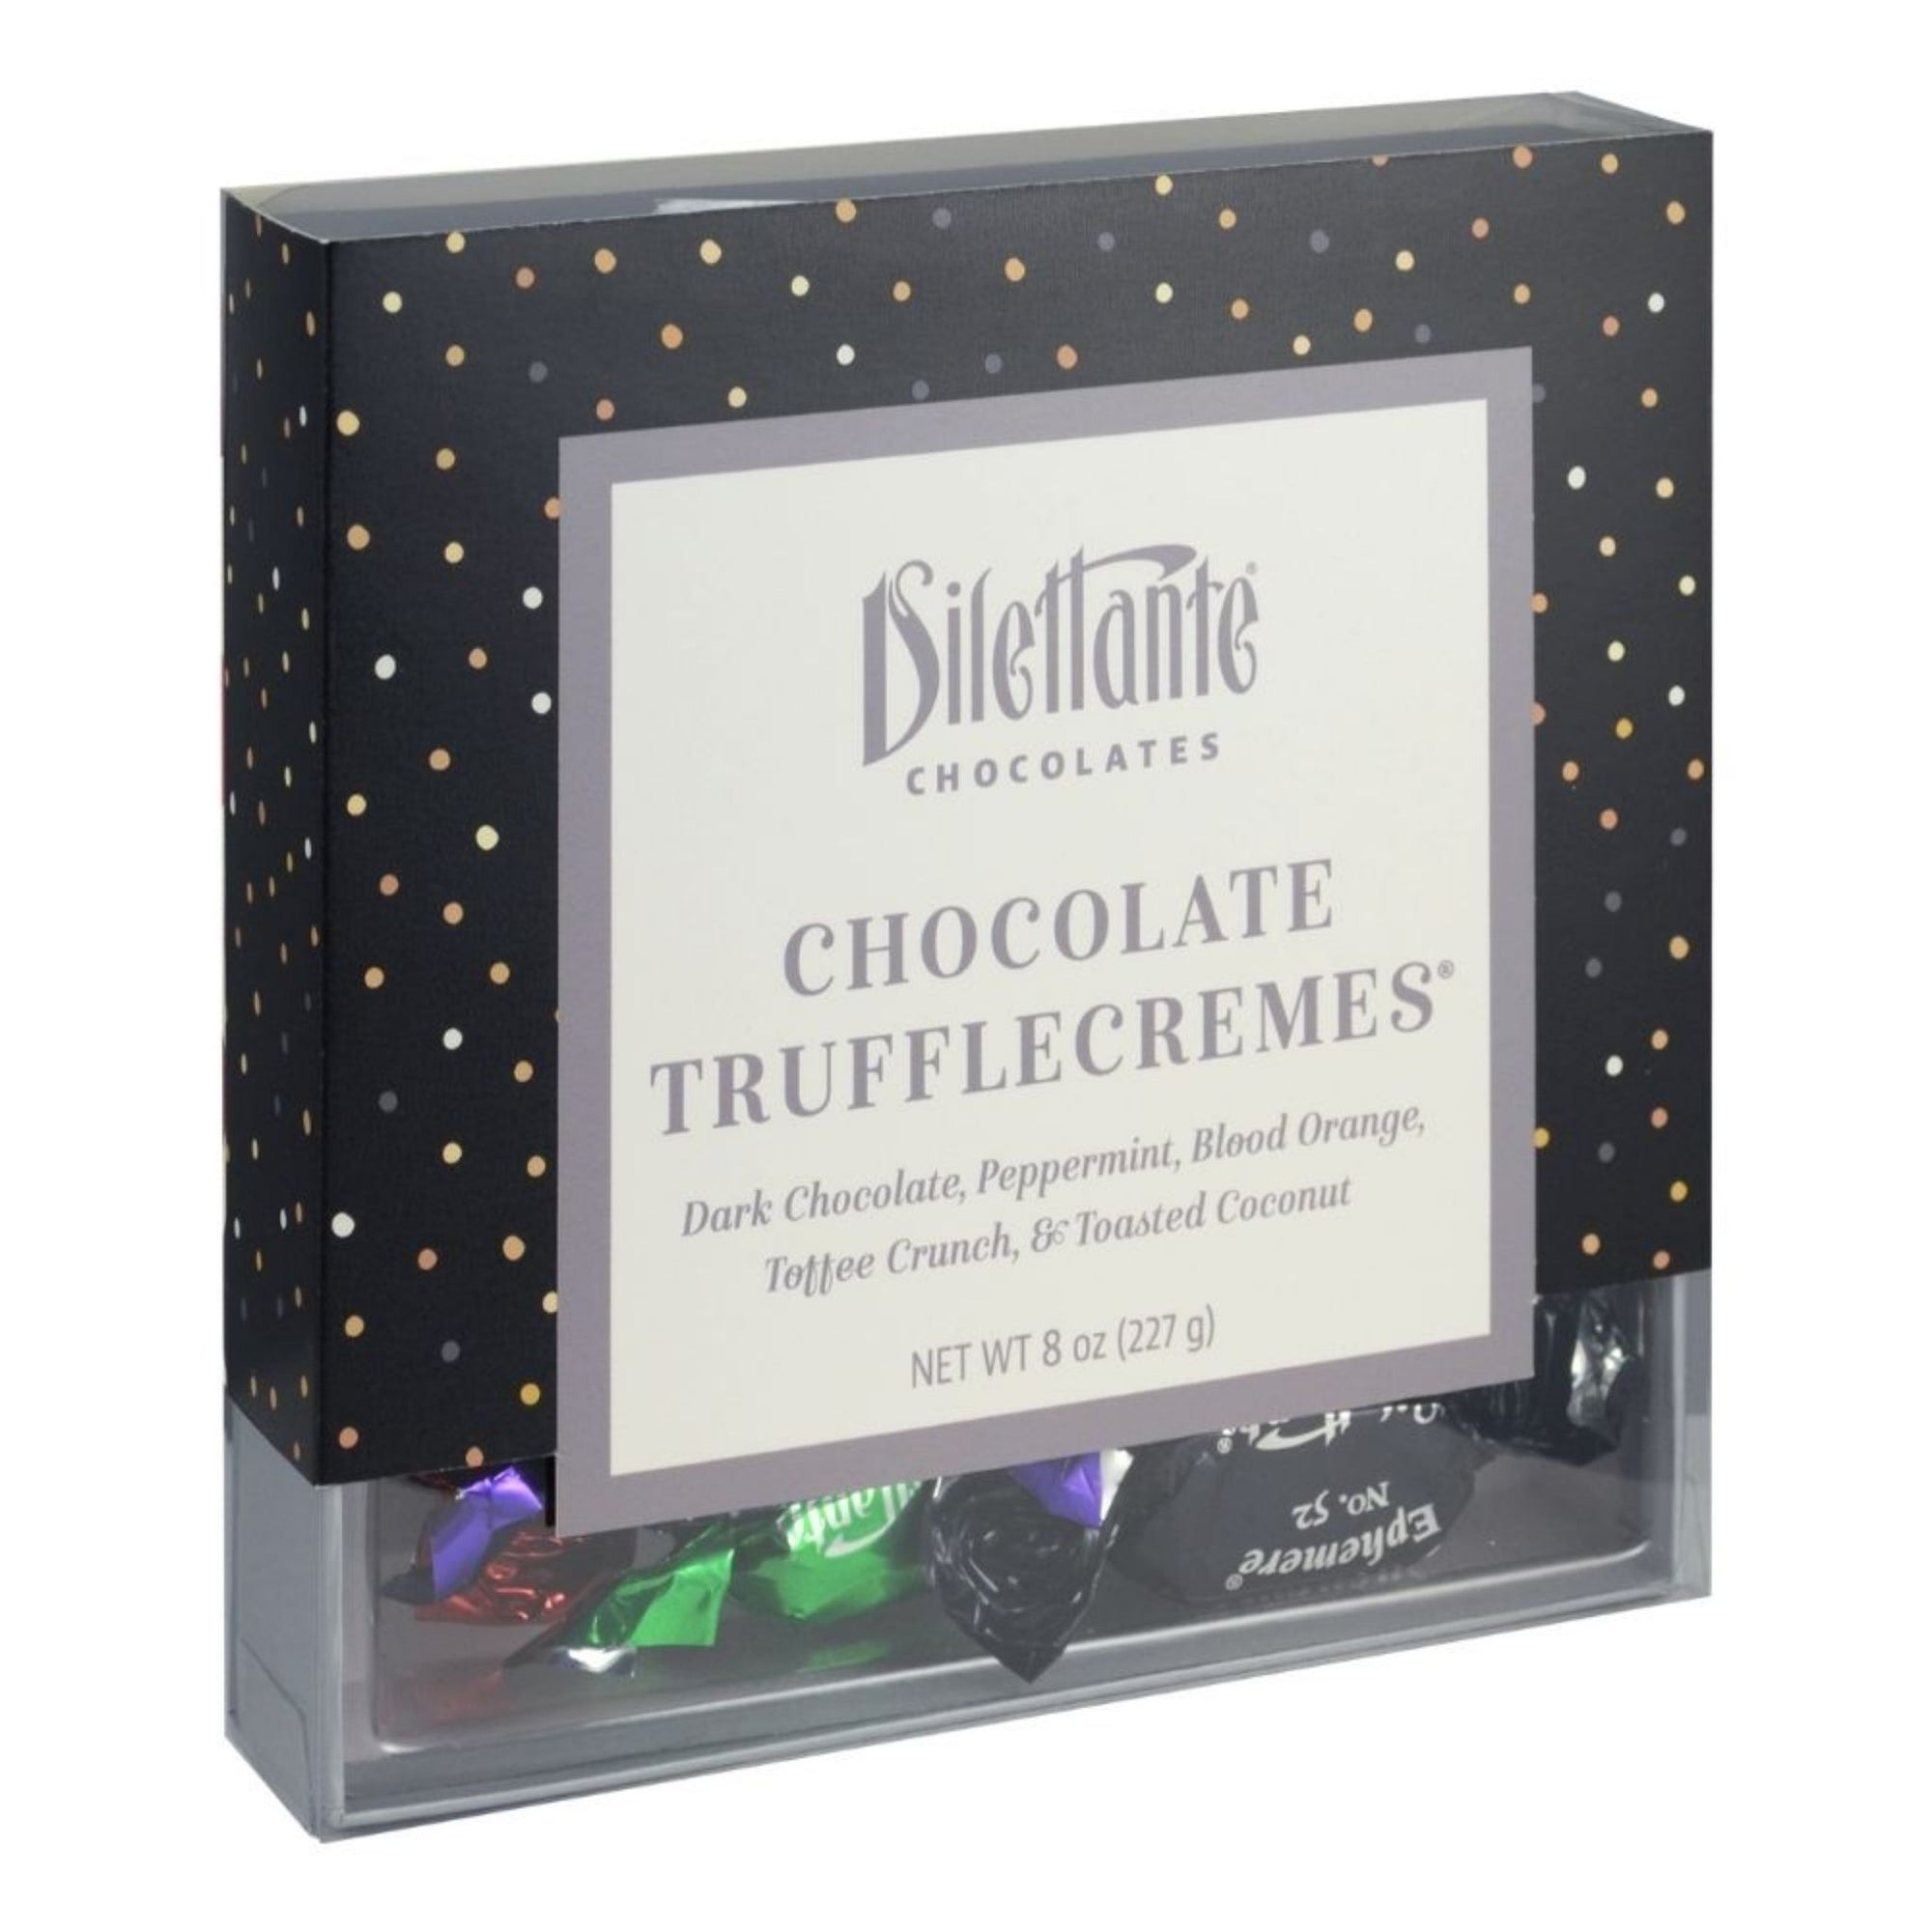 Dilettante Chocolates Assorted TruffleCreme Novelty Gift Back Featuring Peppermint, Blood Orange, Toffee, Crunch and Toasted Coconut